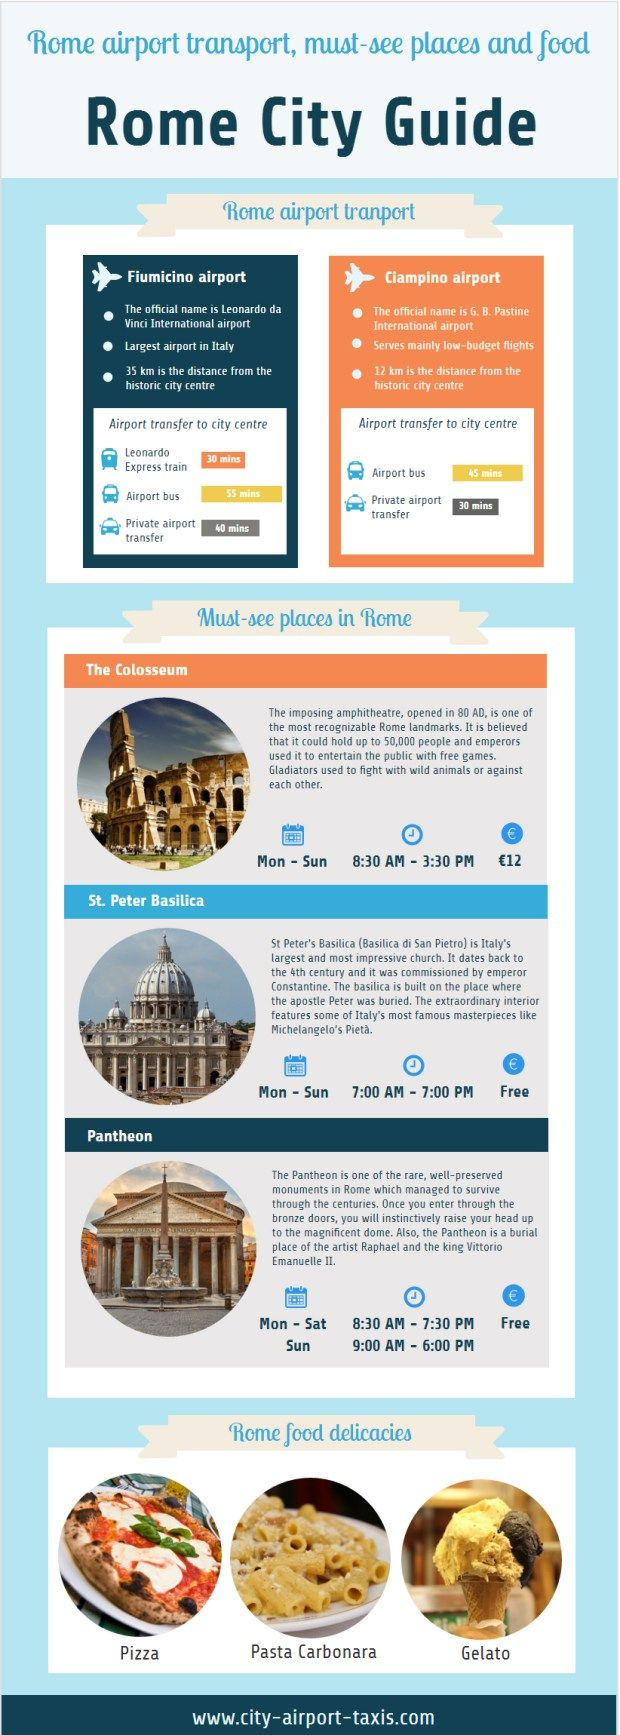 Rome city guide: Rome airport transport, must-see places and food